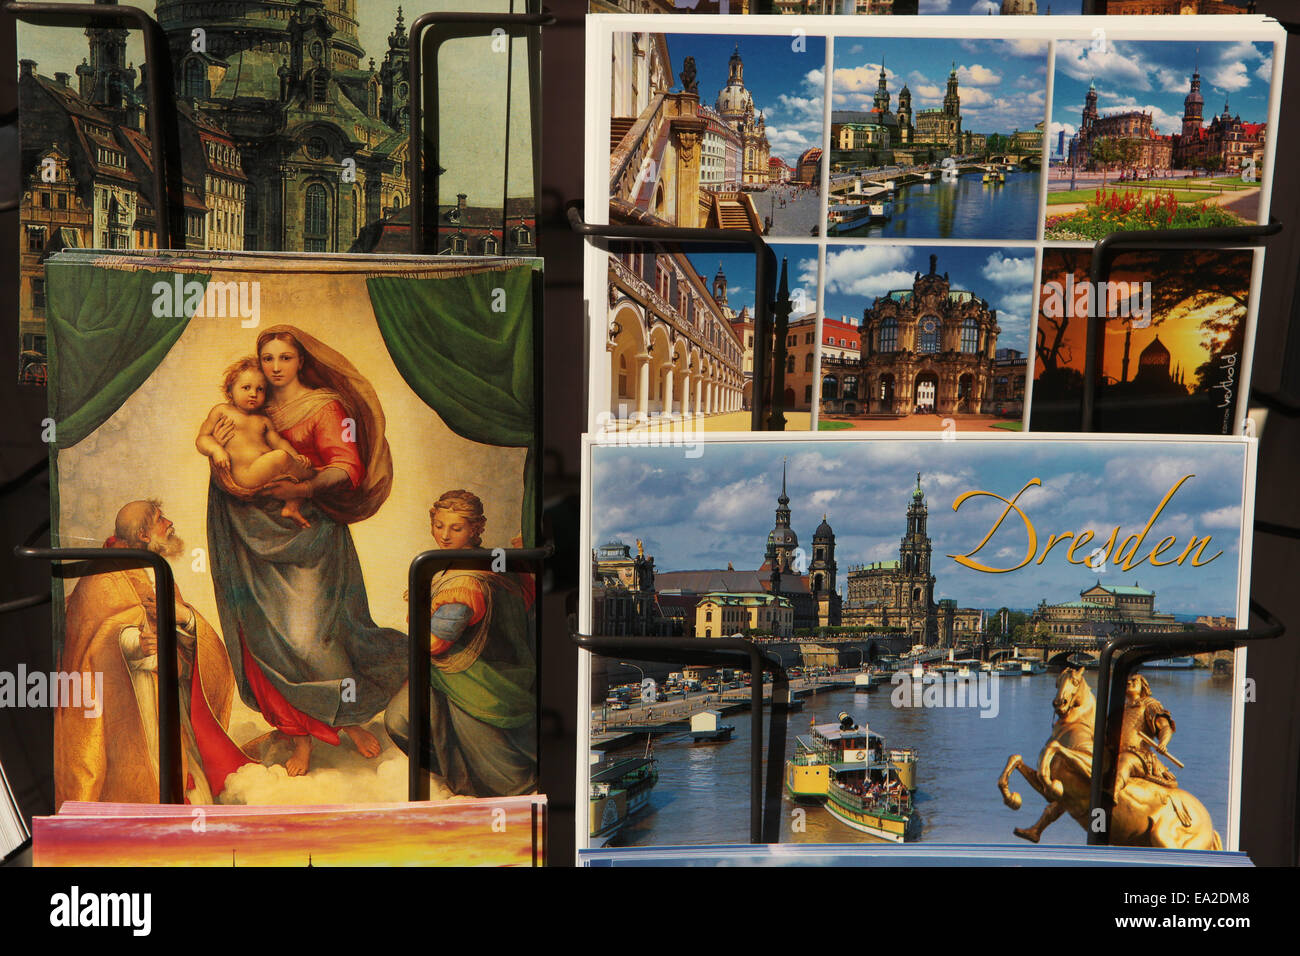 Sistine Madonna by Raphael and postcards with Dresden landmarks in a souvenir shop in Dresden, Saxony, Germany. - Stock Image